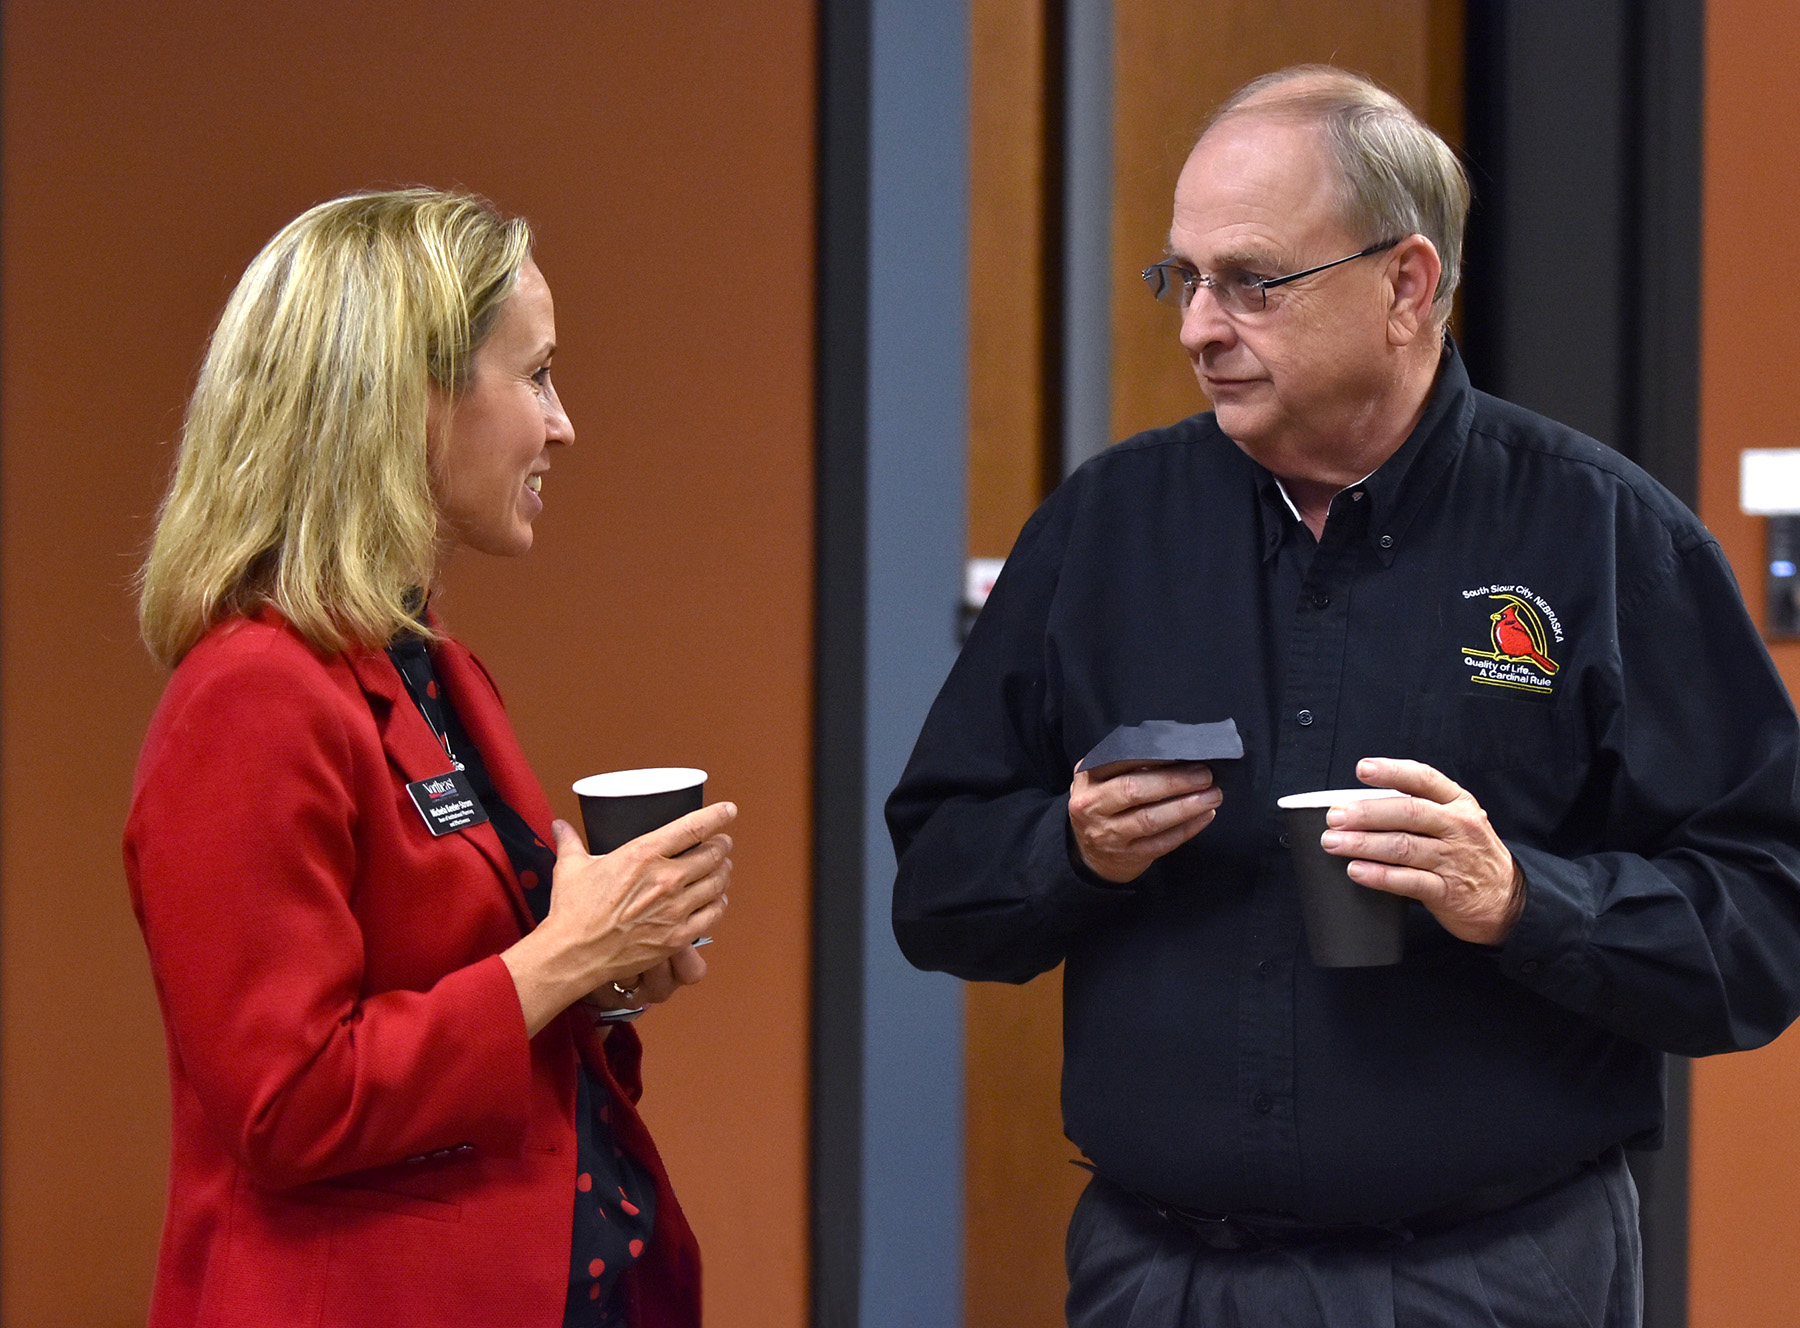 Northeast outlines initiatives during South Sioux City Chamber event